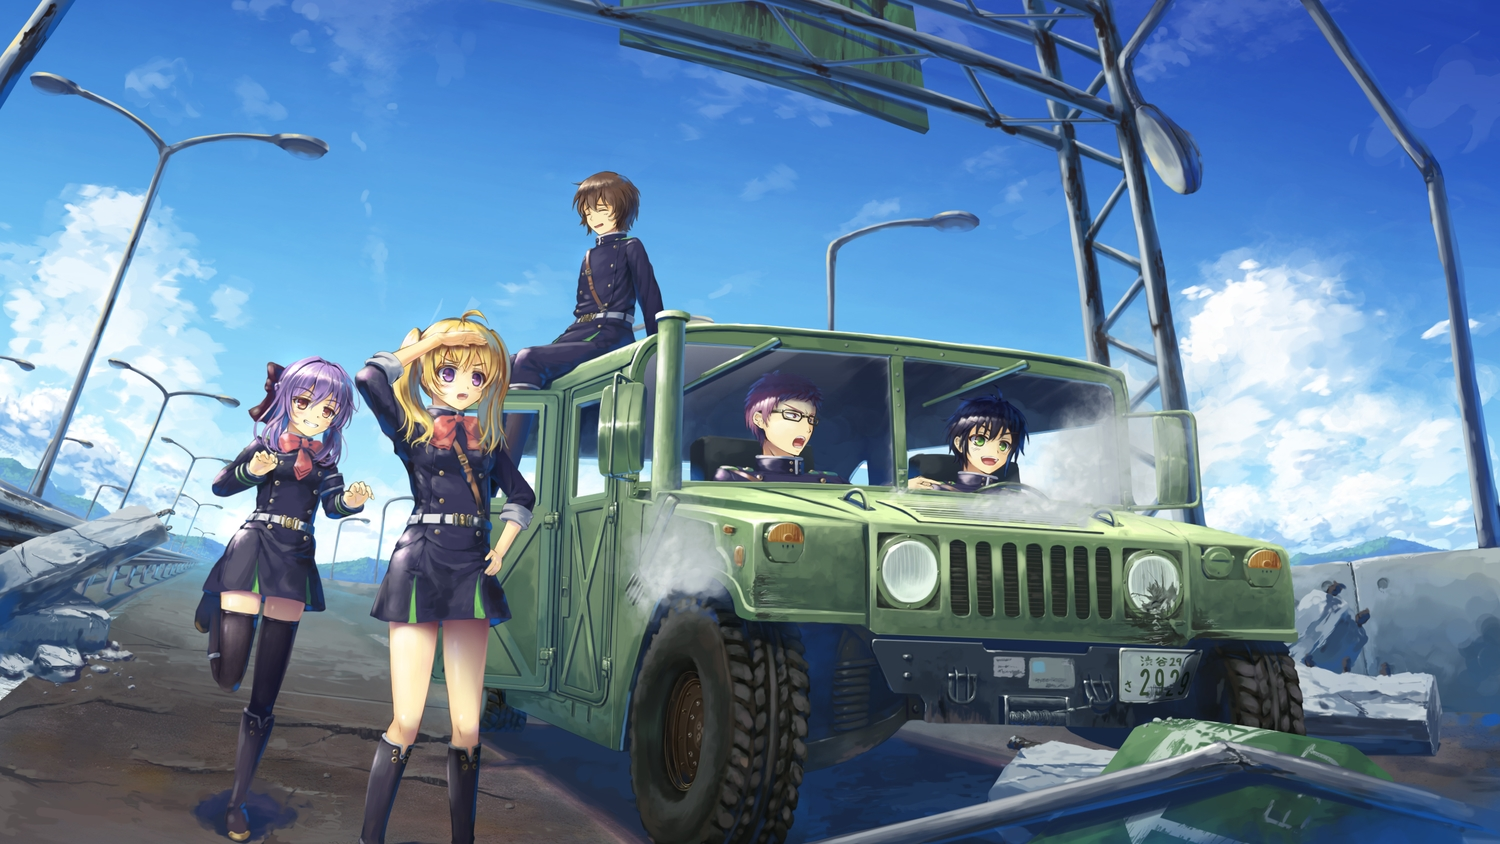 2girls black_hair blonde_hair blush bow brown_eyes brown_hair car clouds dress glasses group hiiragi_shinoa hyakuya_yuuichirou kimizuki_shihou kneehighs long_hair male owari_no_seraph psyche3313 purple_eyes purple_hair saotome_yoichi short_hair sky thighhighs twintails